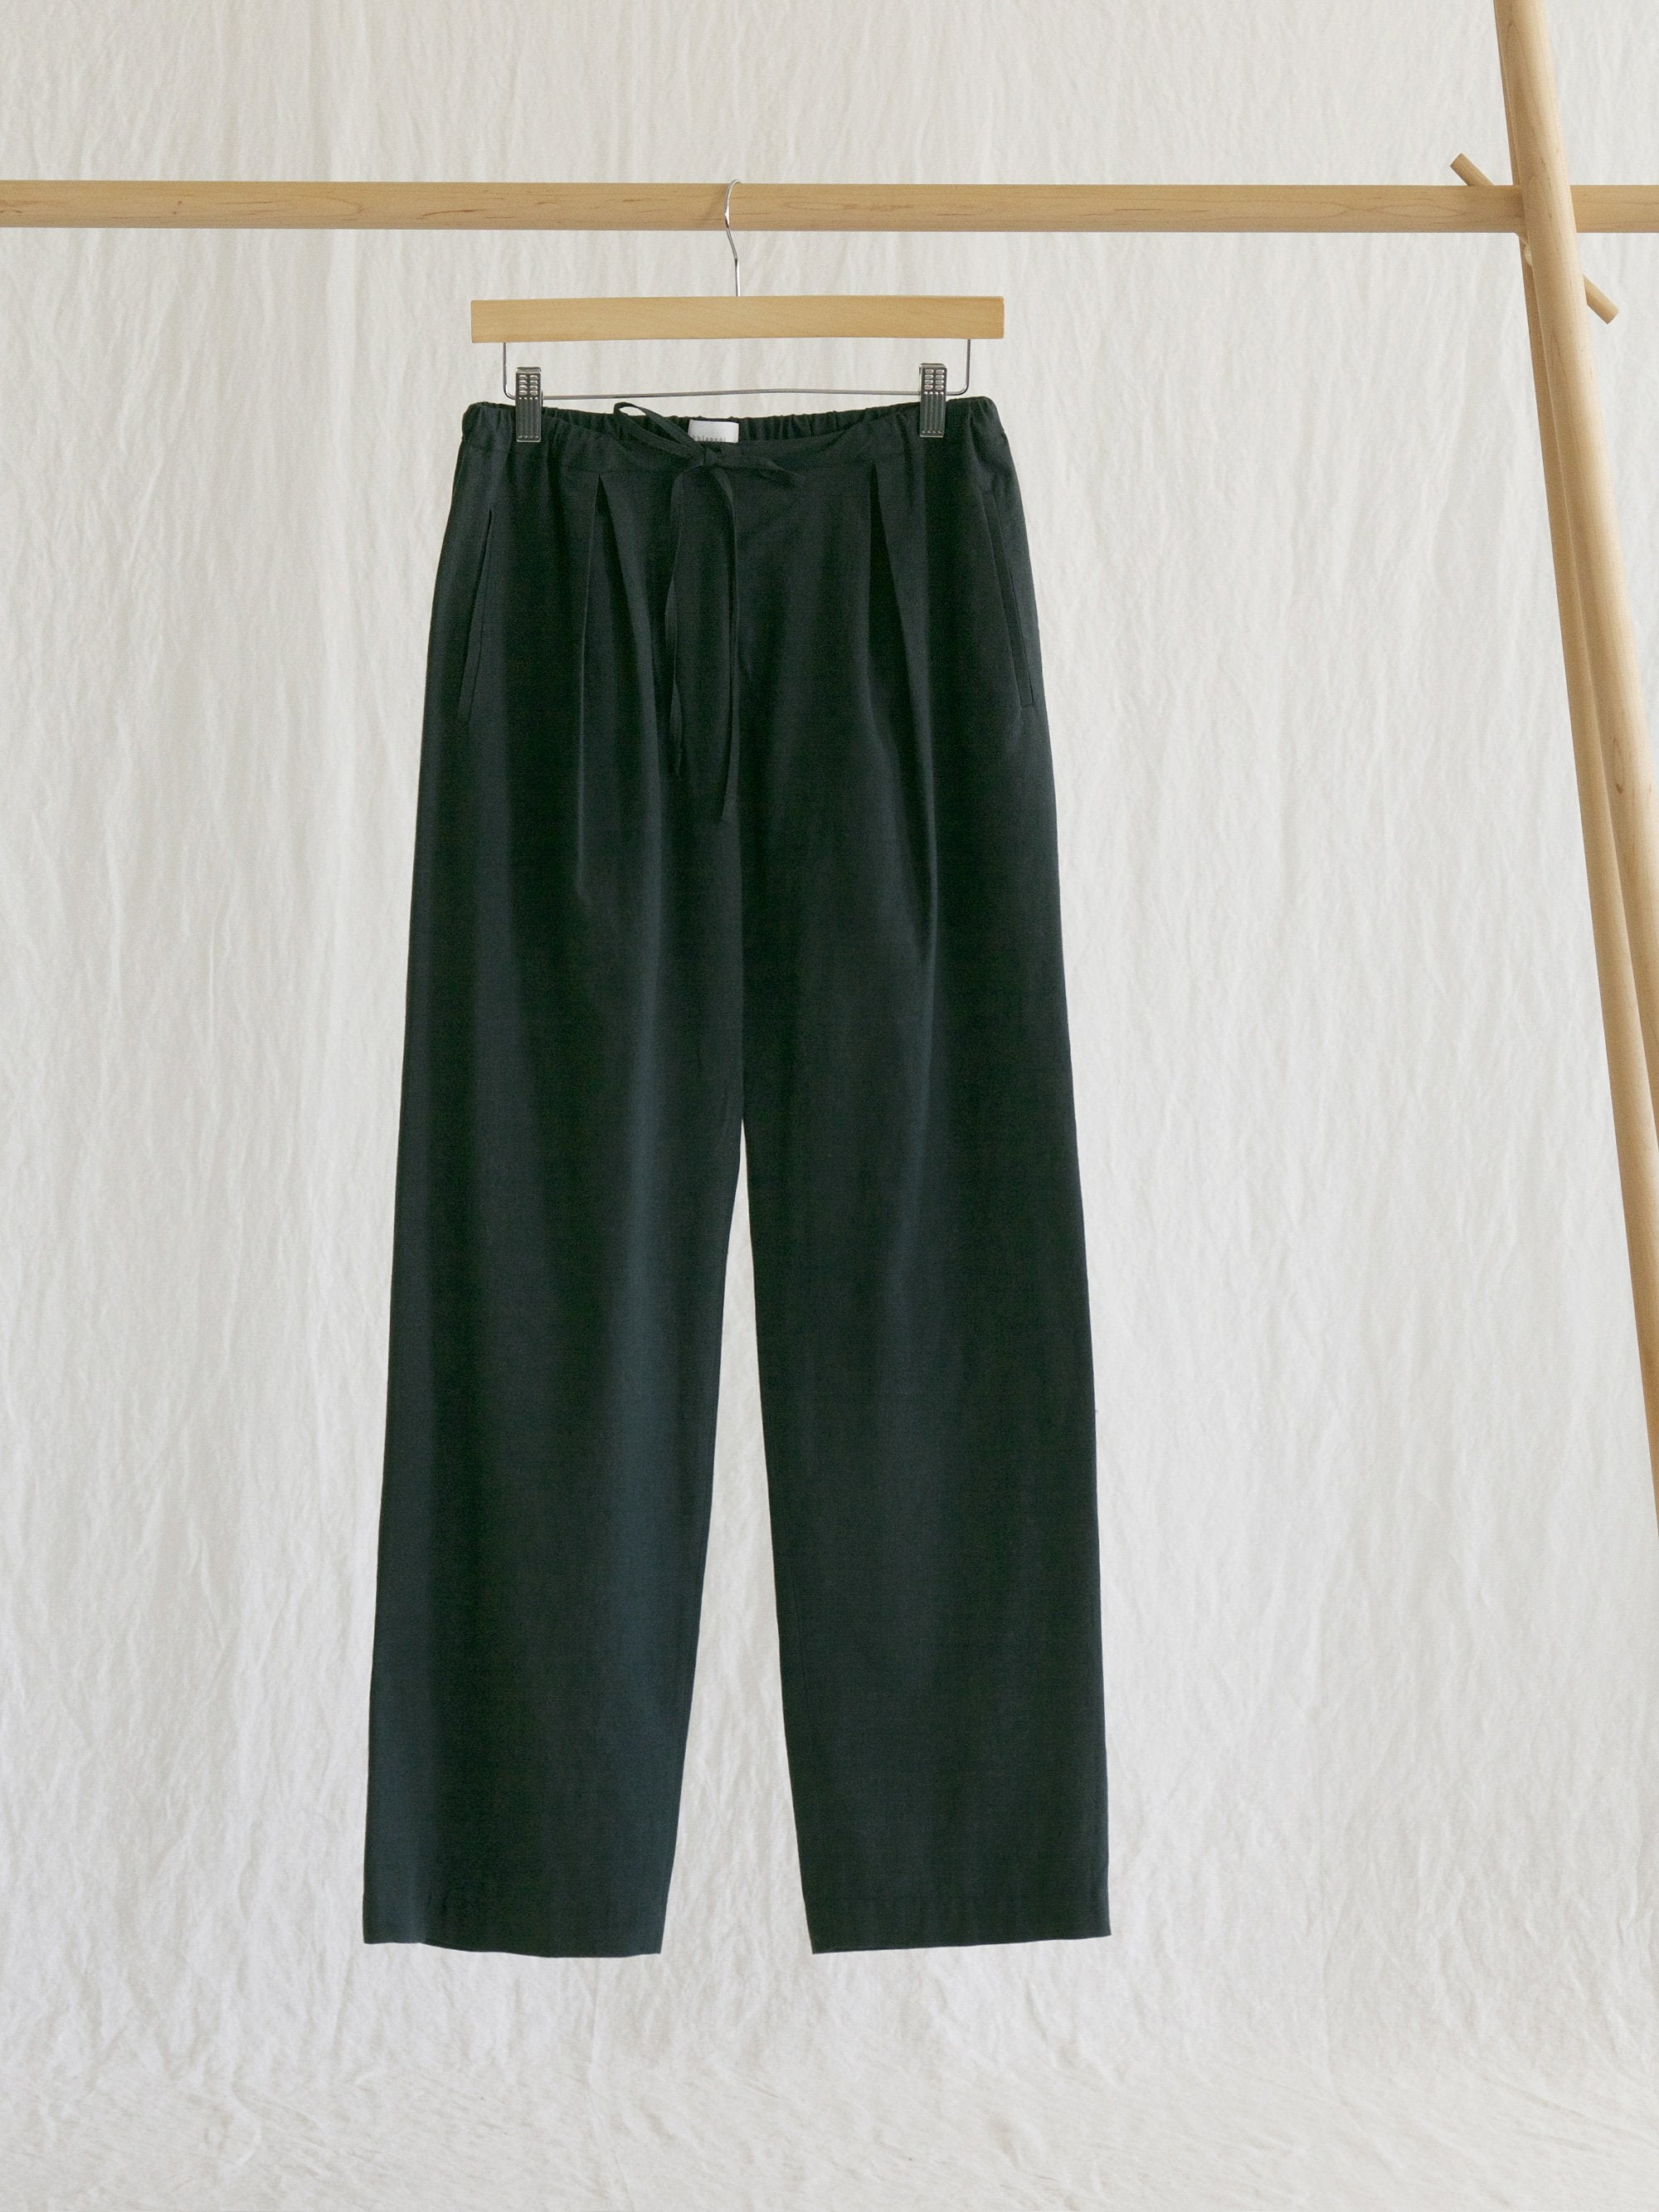 Namu Shop - Phlannel Cotton Alpaca Lawn Easy Trousers - Dark Green